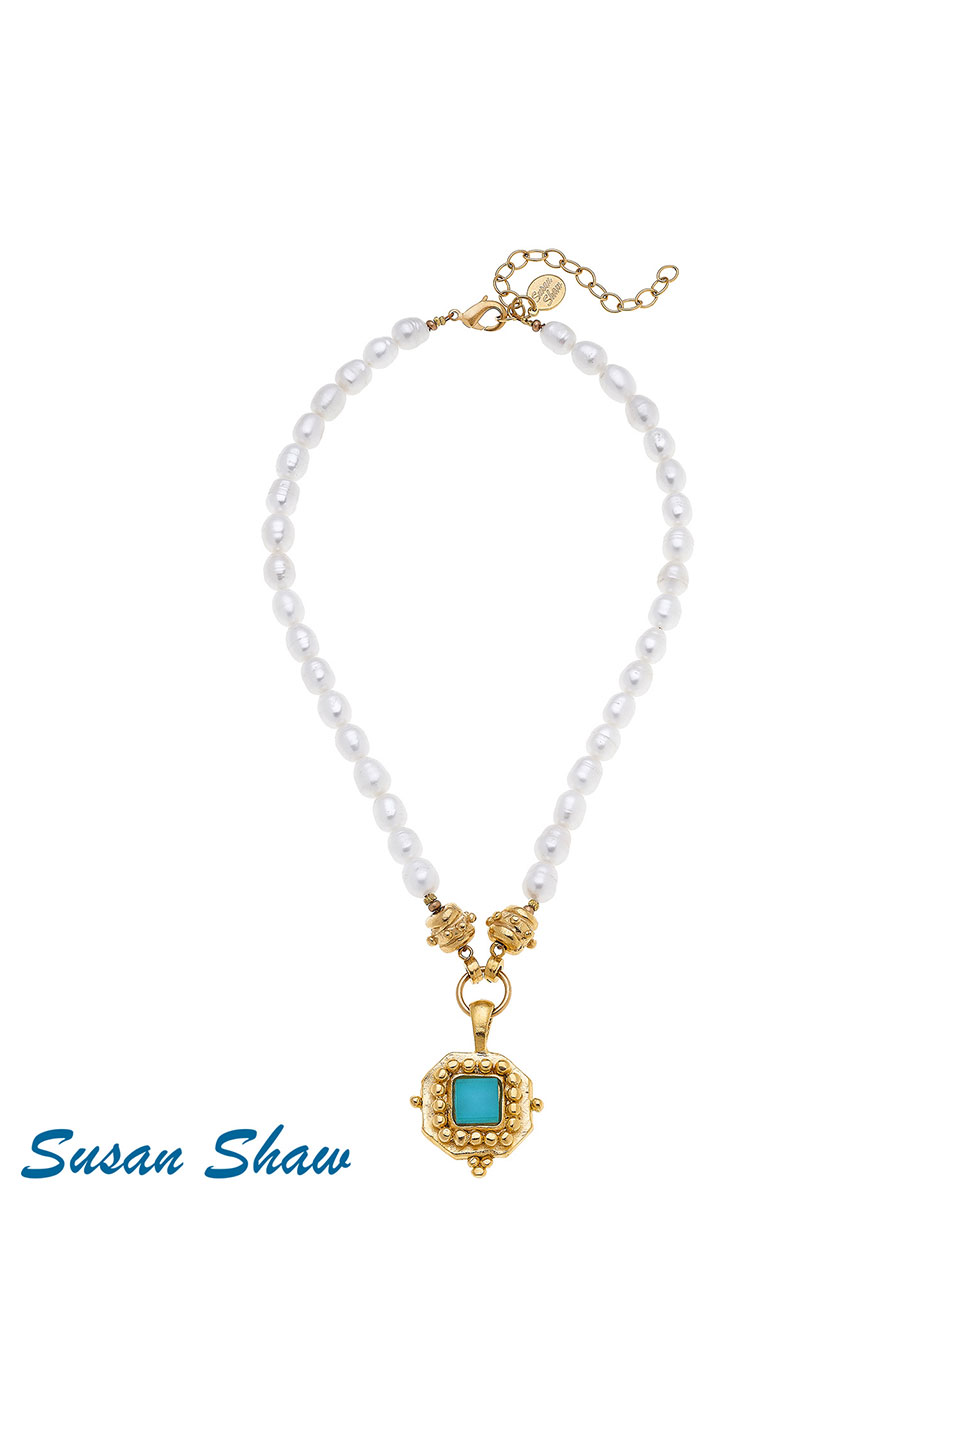 Susan Shaw Handcast Gold Square with Teal French Glass on Genuine Pearl Necklace